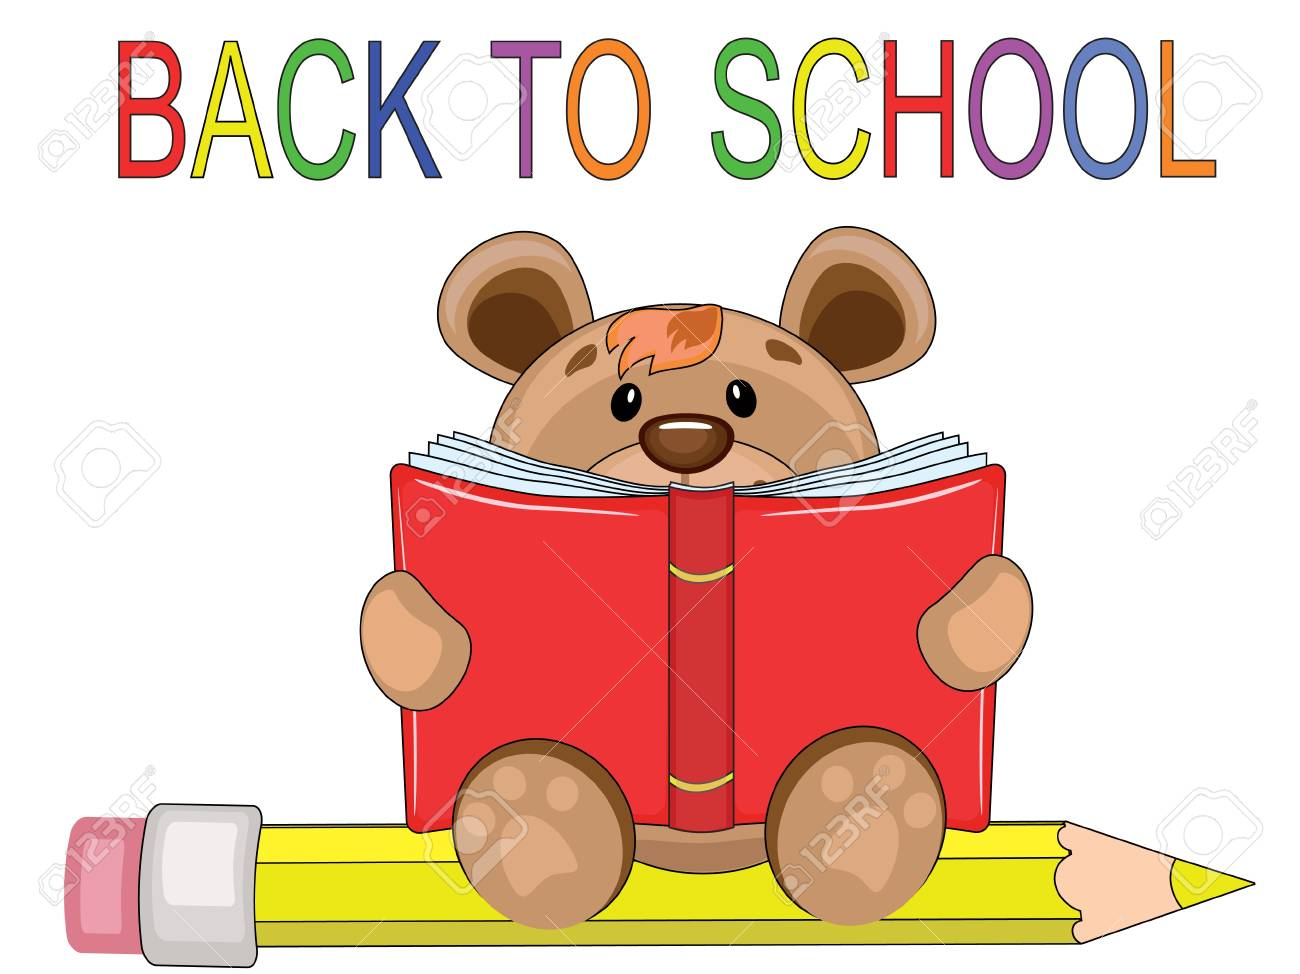 Back to school - 9800371